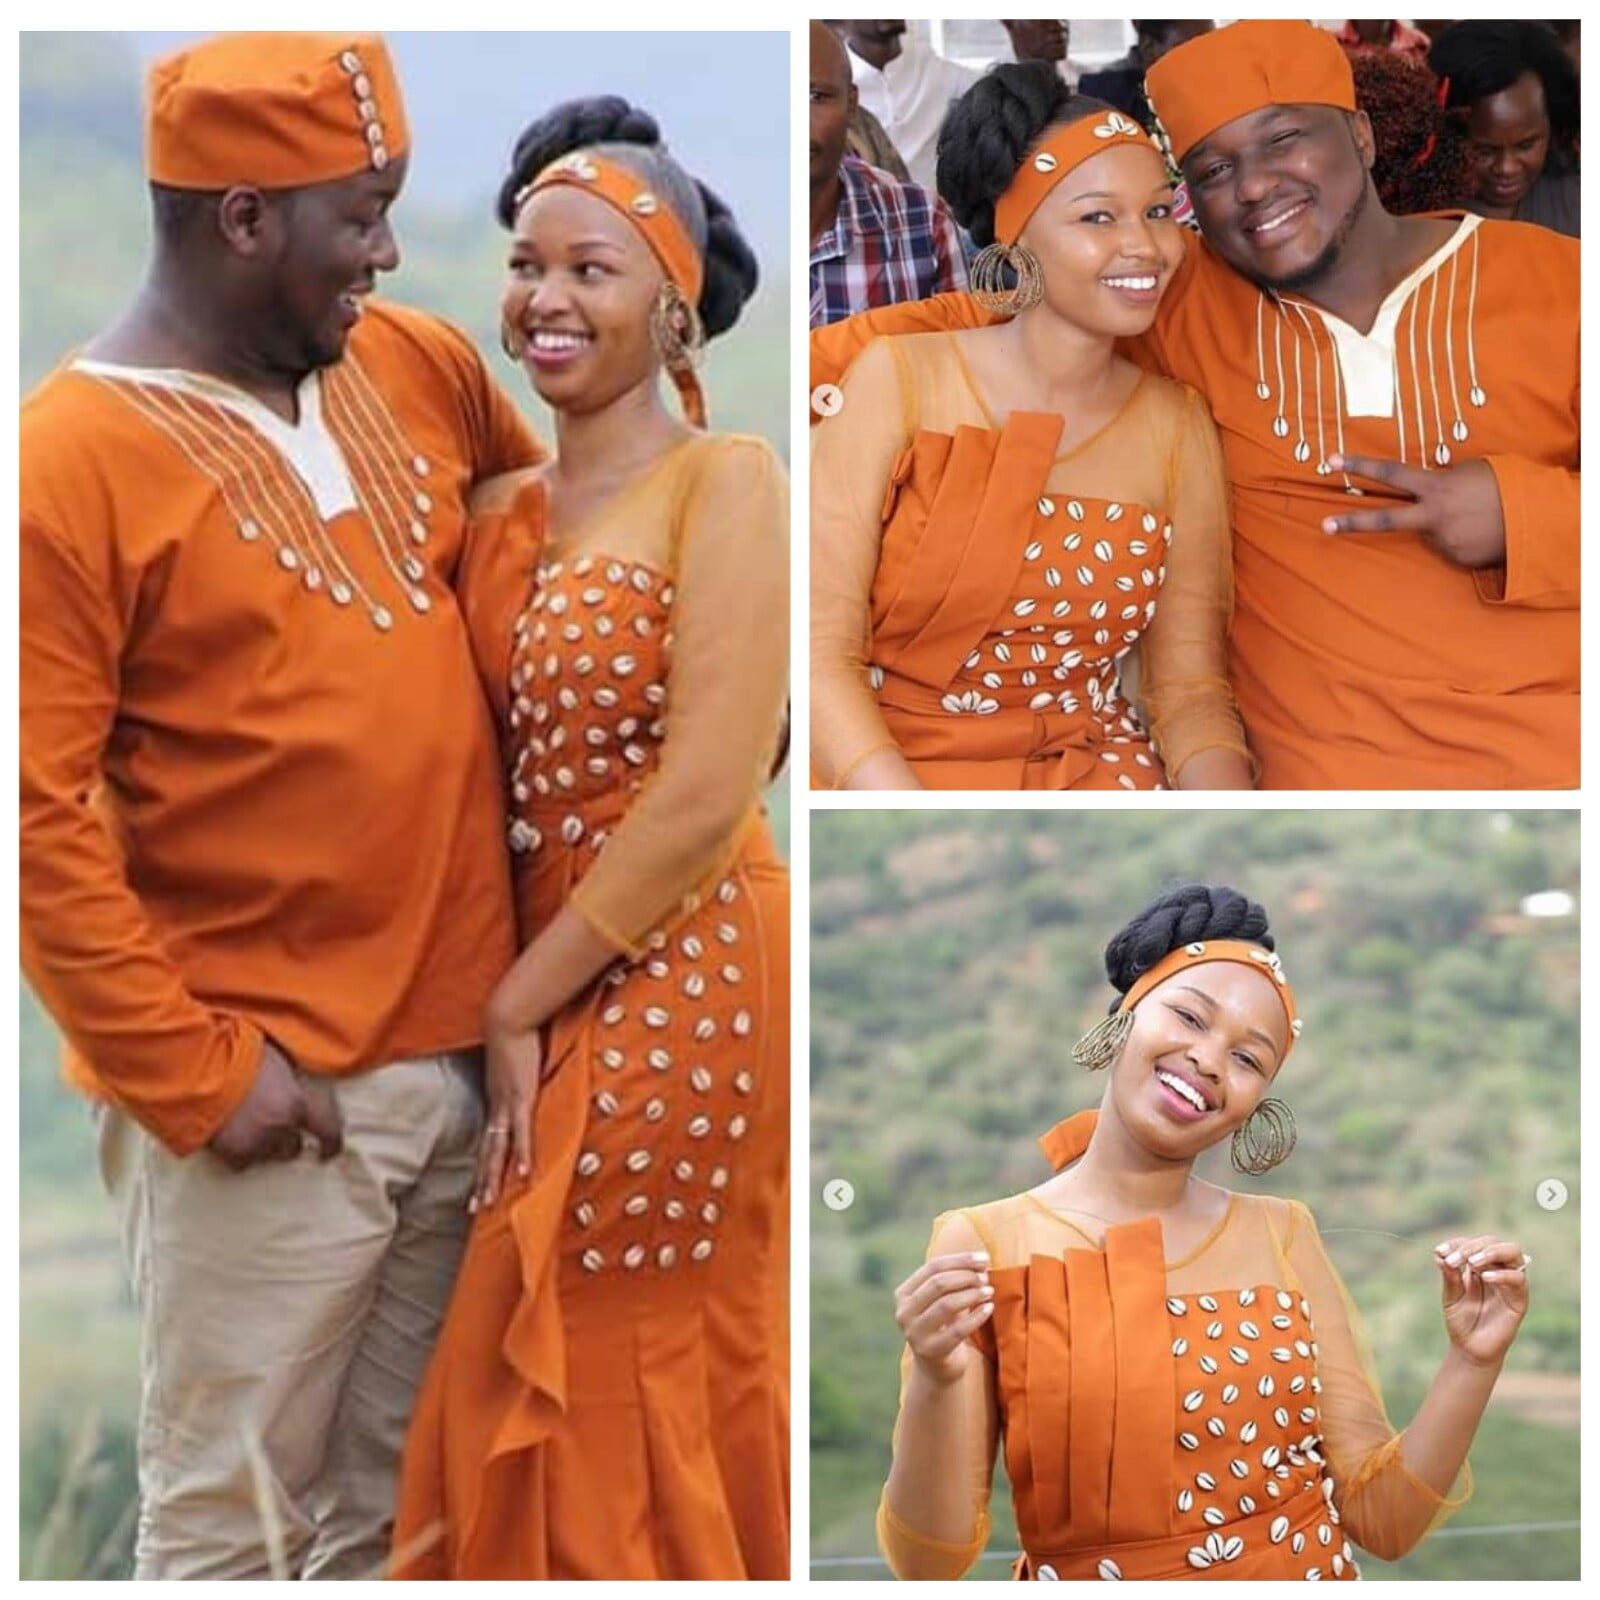 Kenyan Couple In Ruracio Traditional Attire Kikuyu